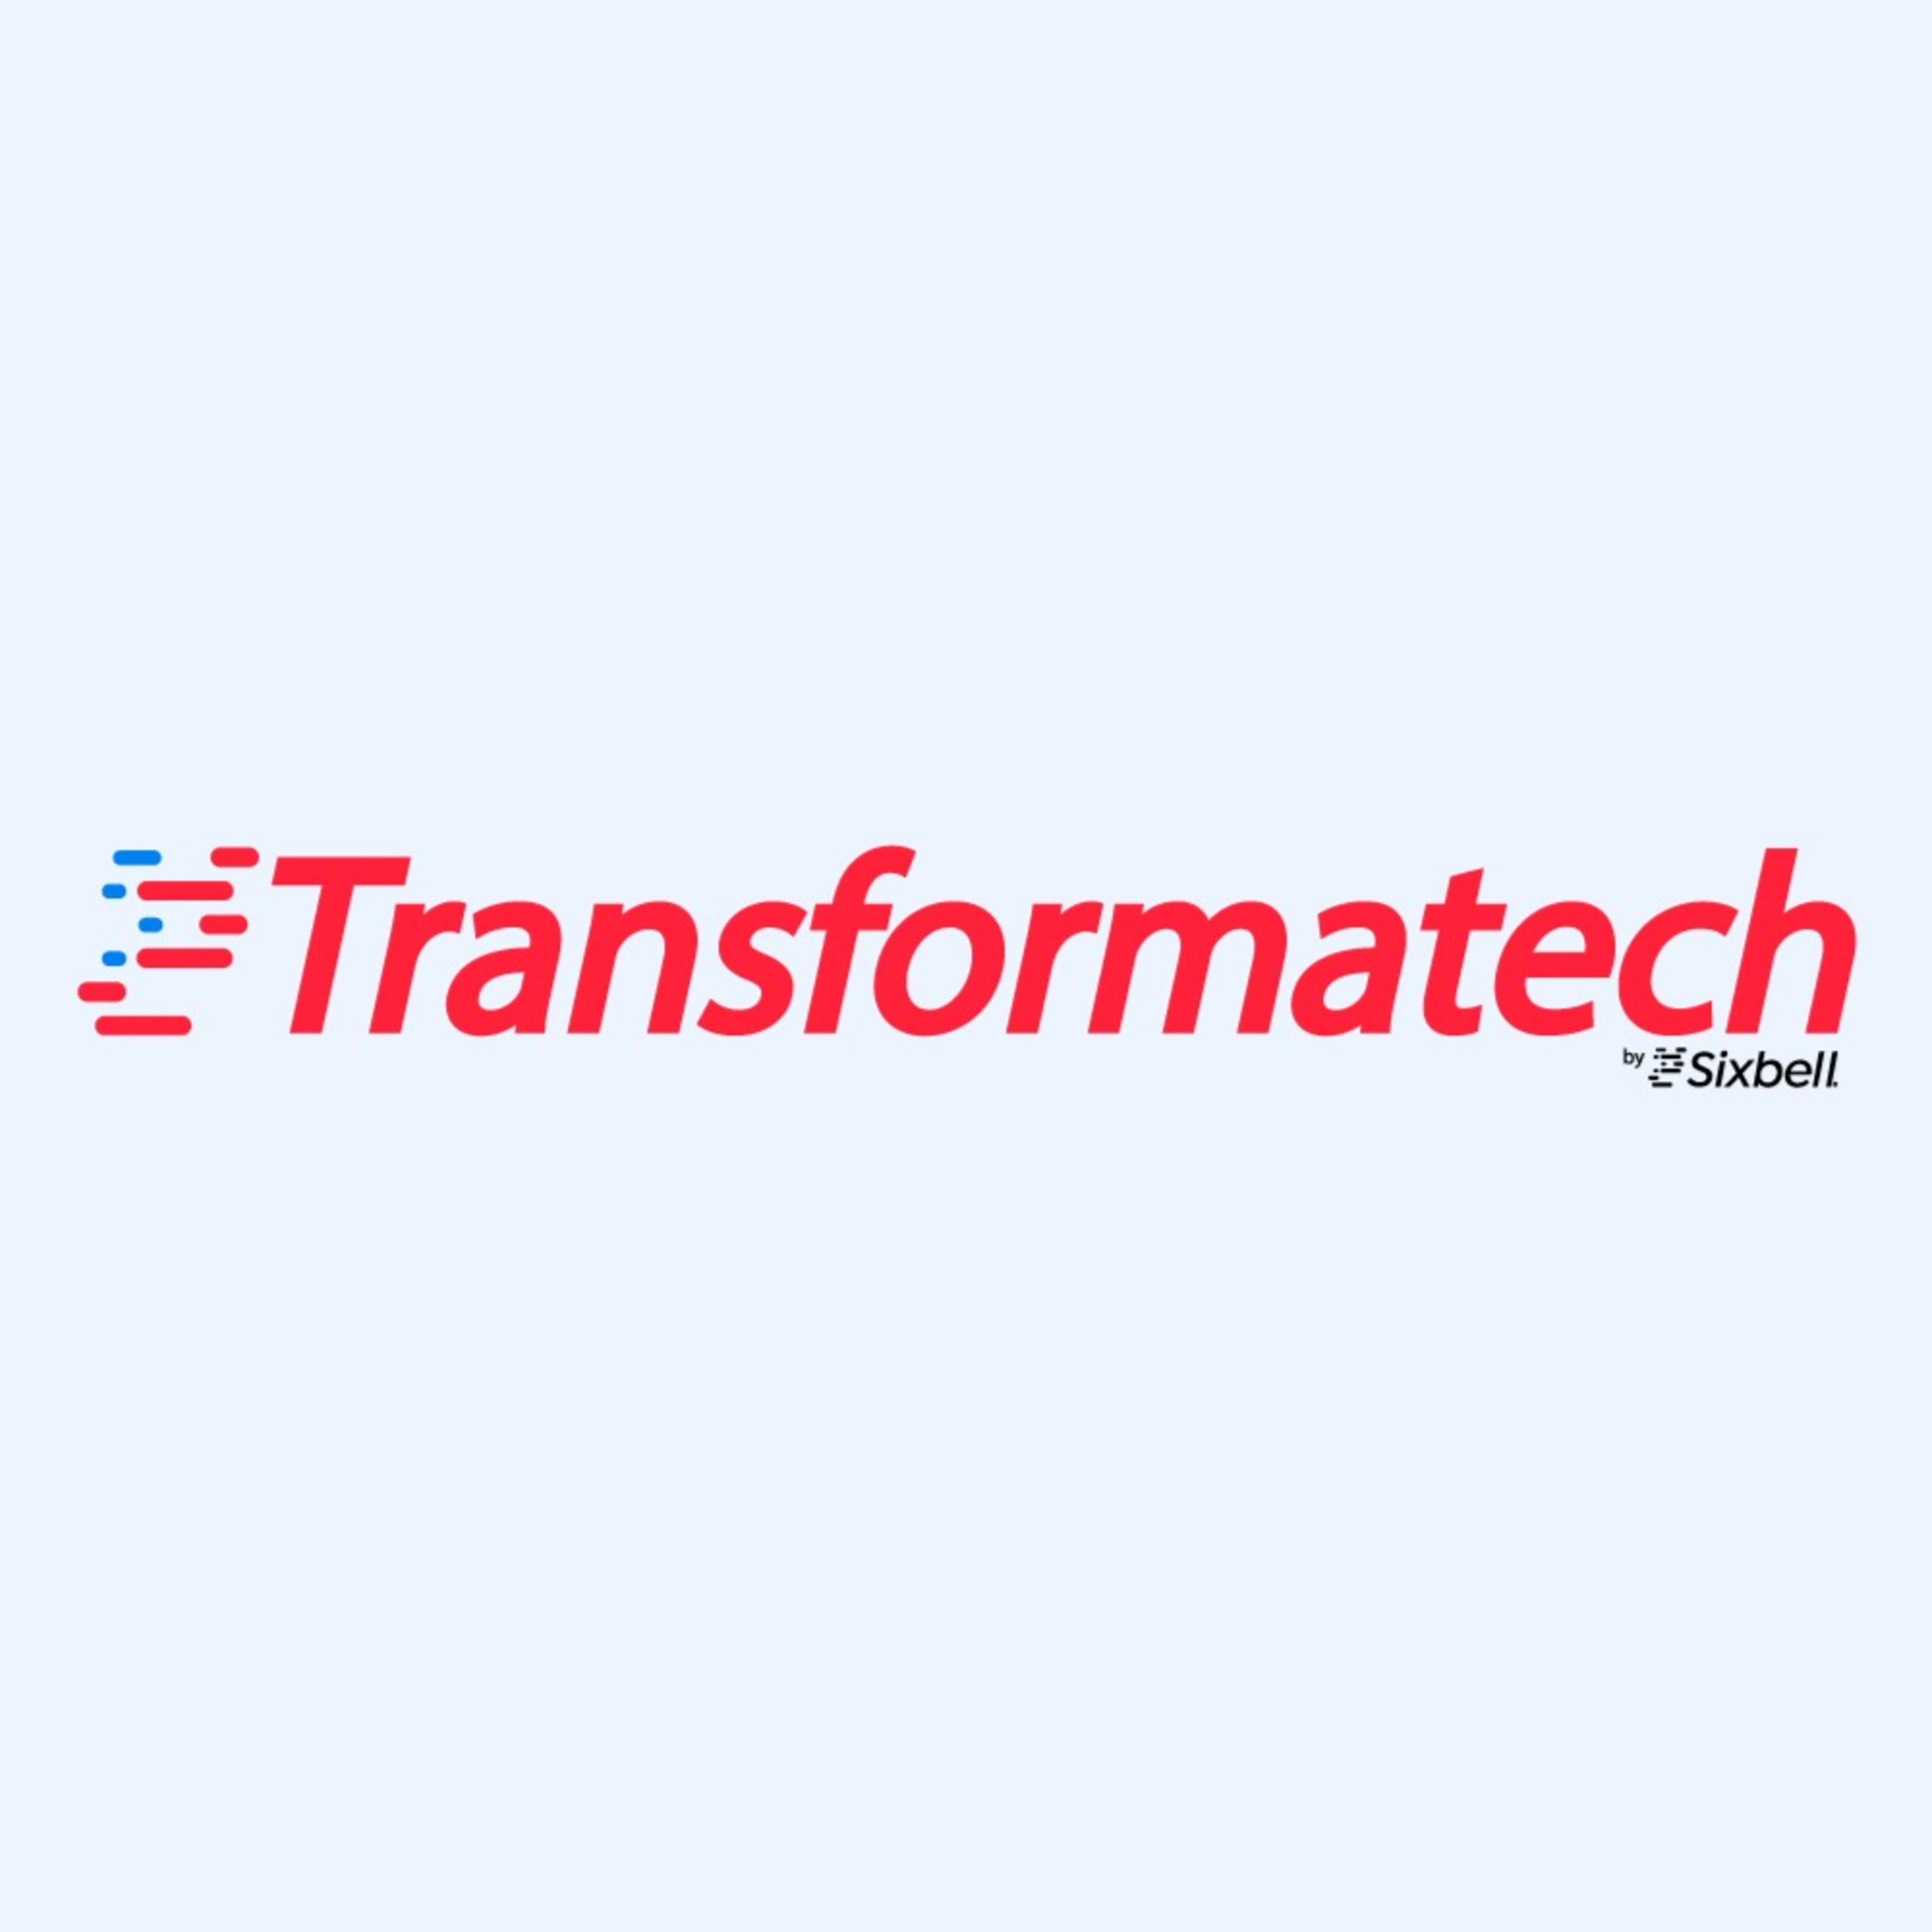 Transformatech by sixbell